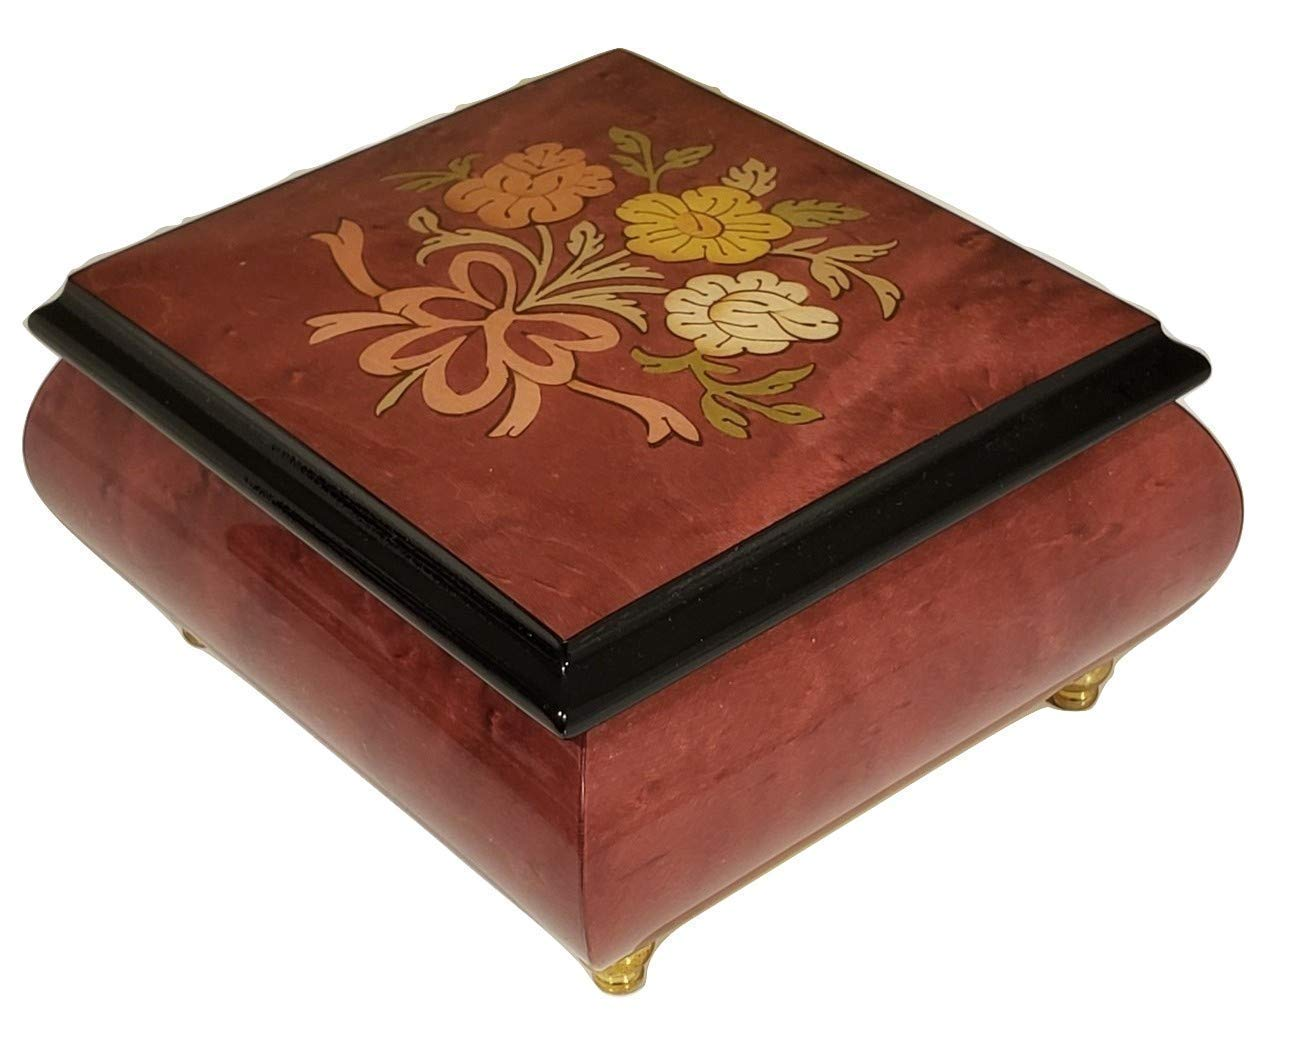 Wine Colored Floral Italian inlaid music box//jewelry box with customizable tune options in elegant high gloss finish